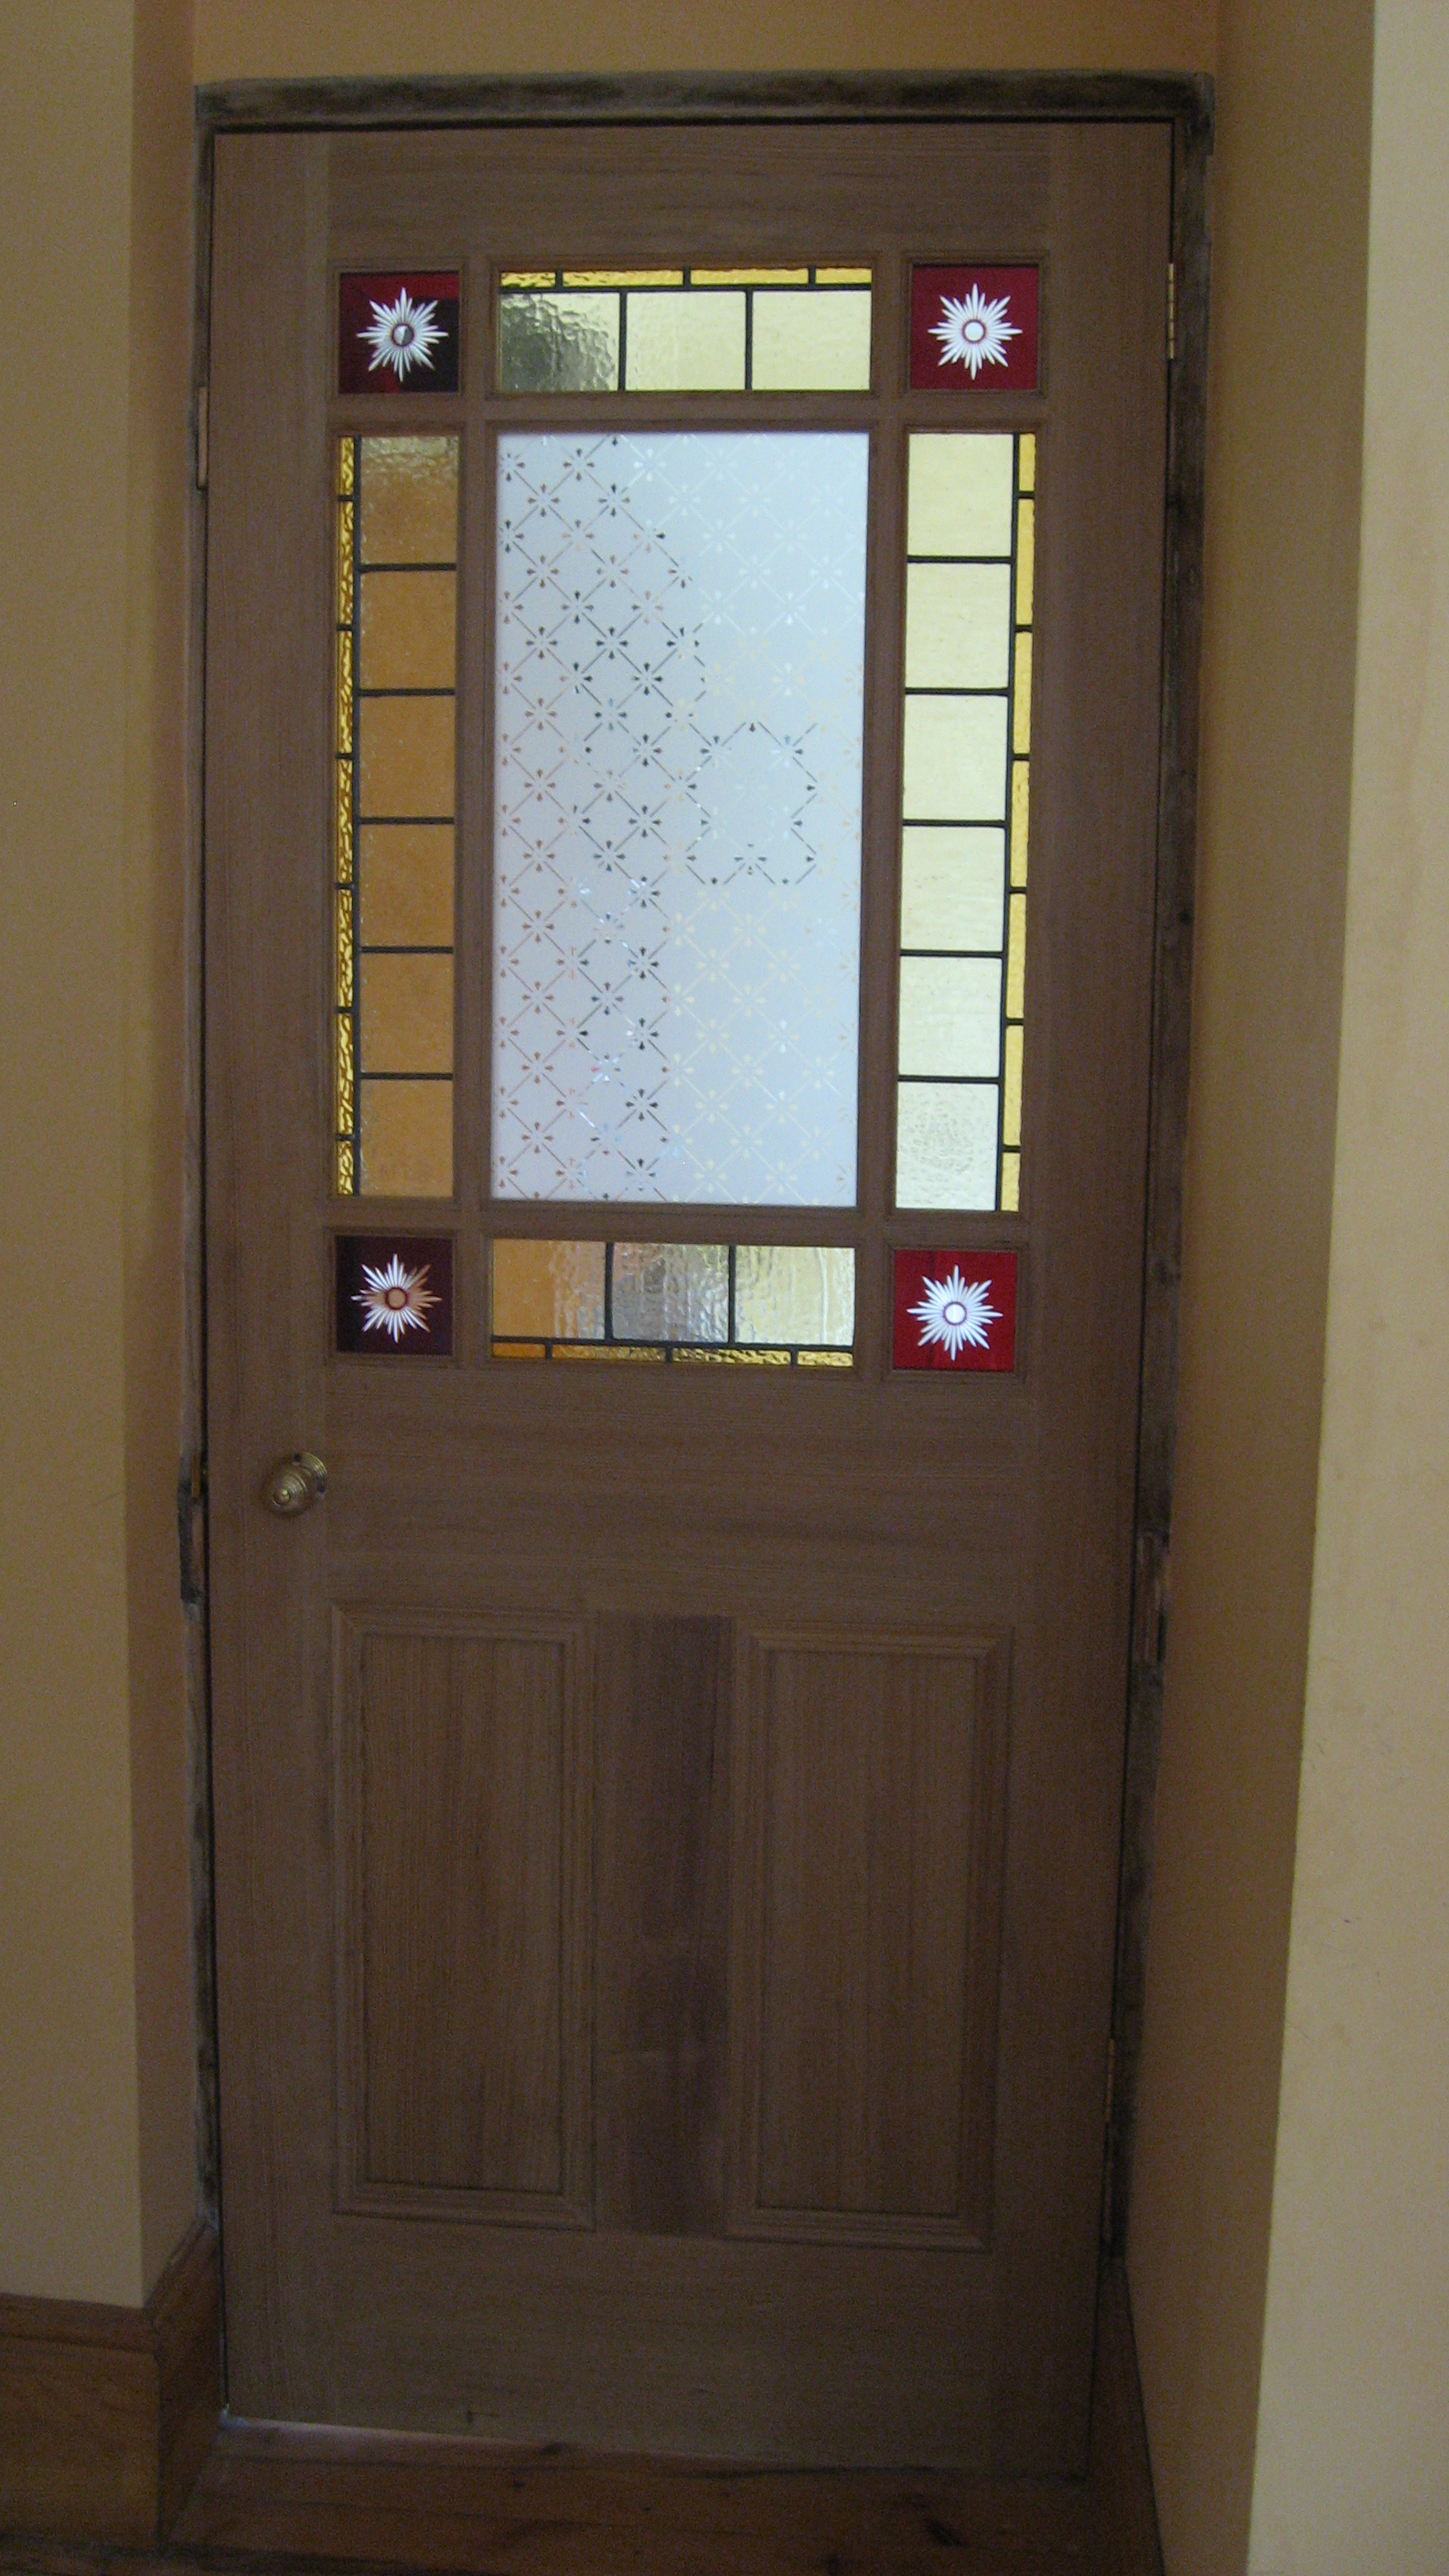 l handballtunisie fascinating interior with glass door half org wooden doors